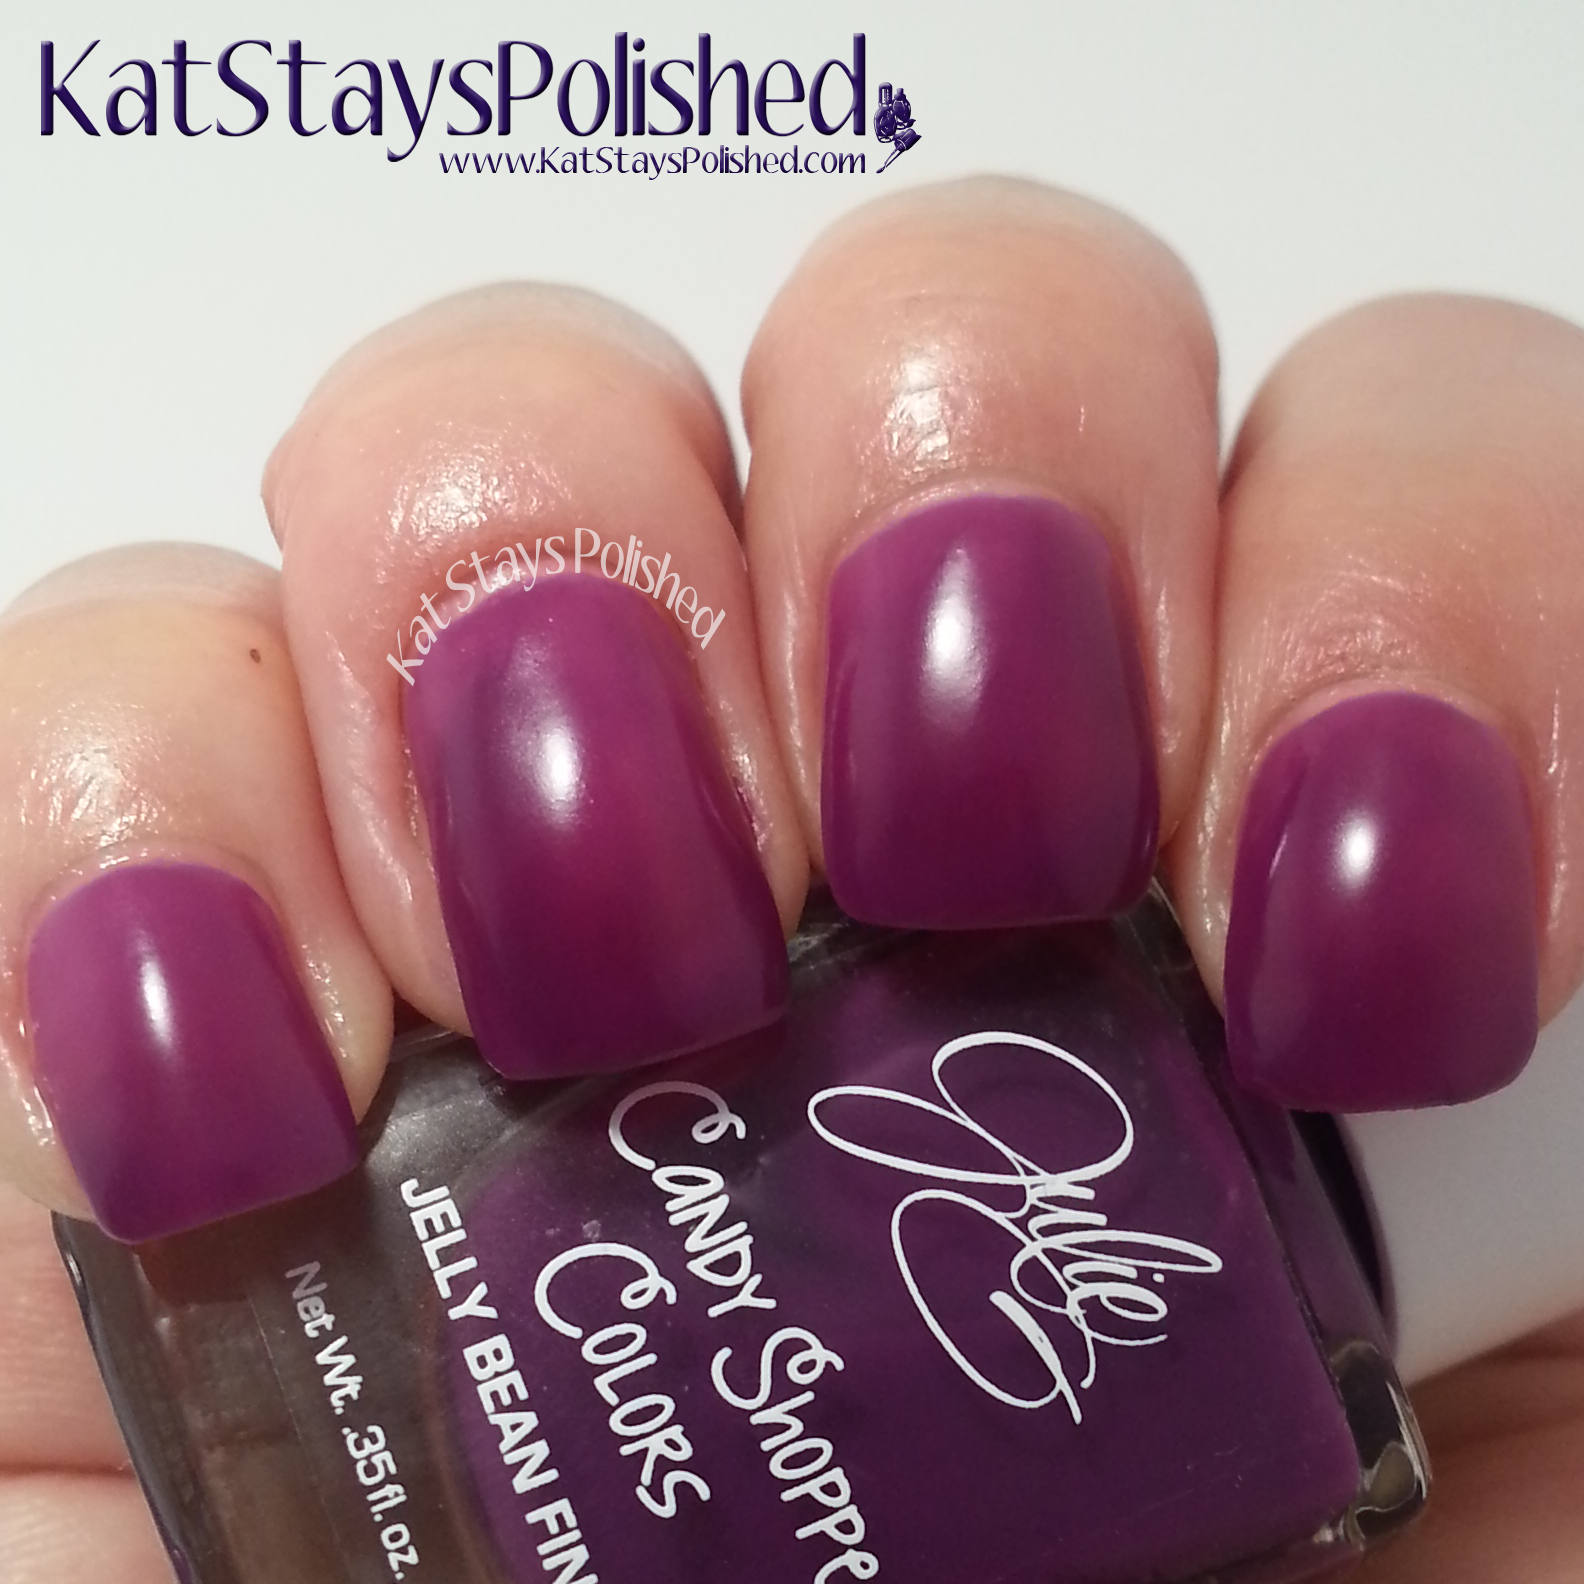 JulieG Candy Shoppe Colors - Lollipop | Kat Stays Polished